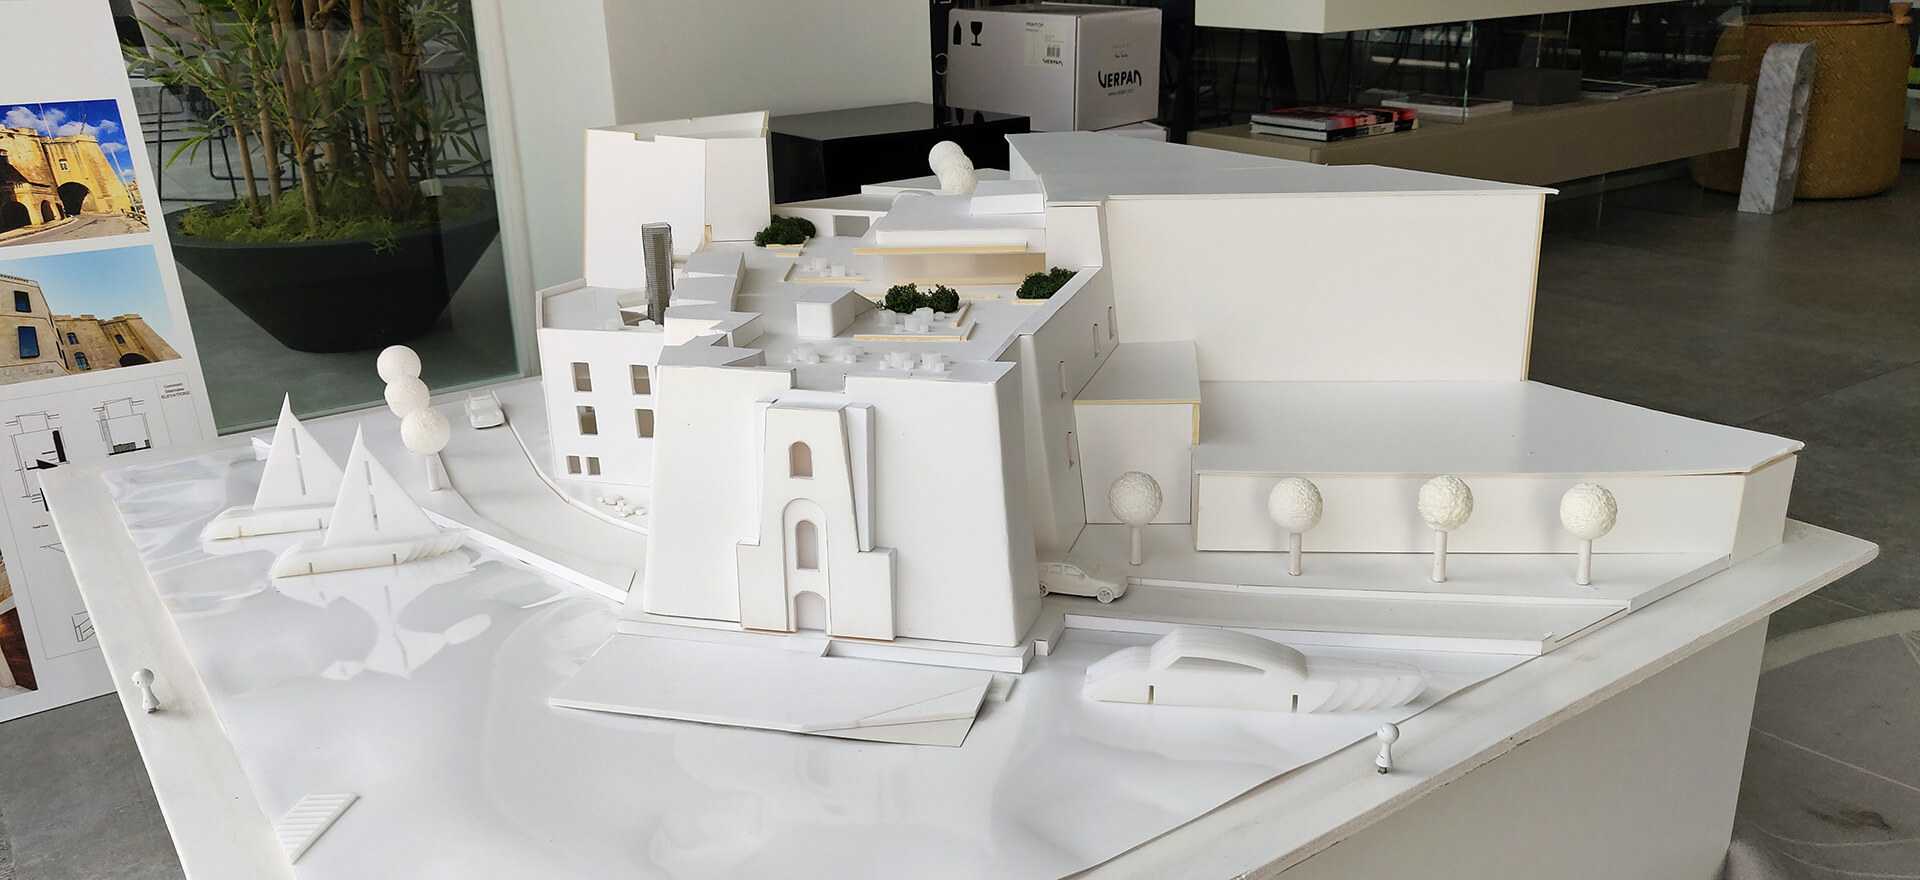 Model of the Cugó Gran Macina Grand Harbour | DAAA Haus wins German Design Award 2020 for Cugó Gran Macina Grand Harbour | STIRworld